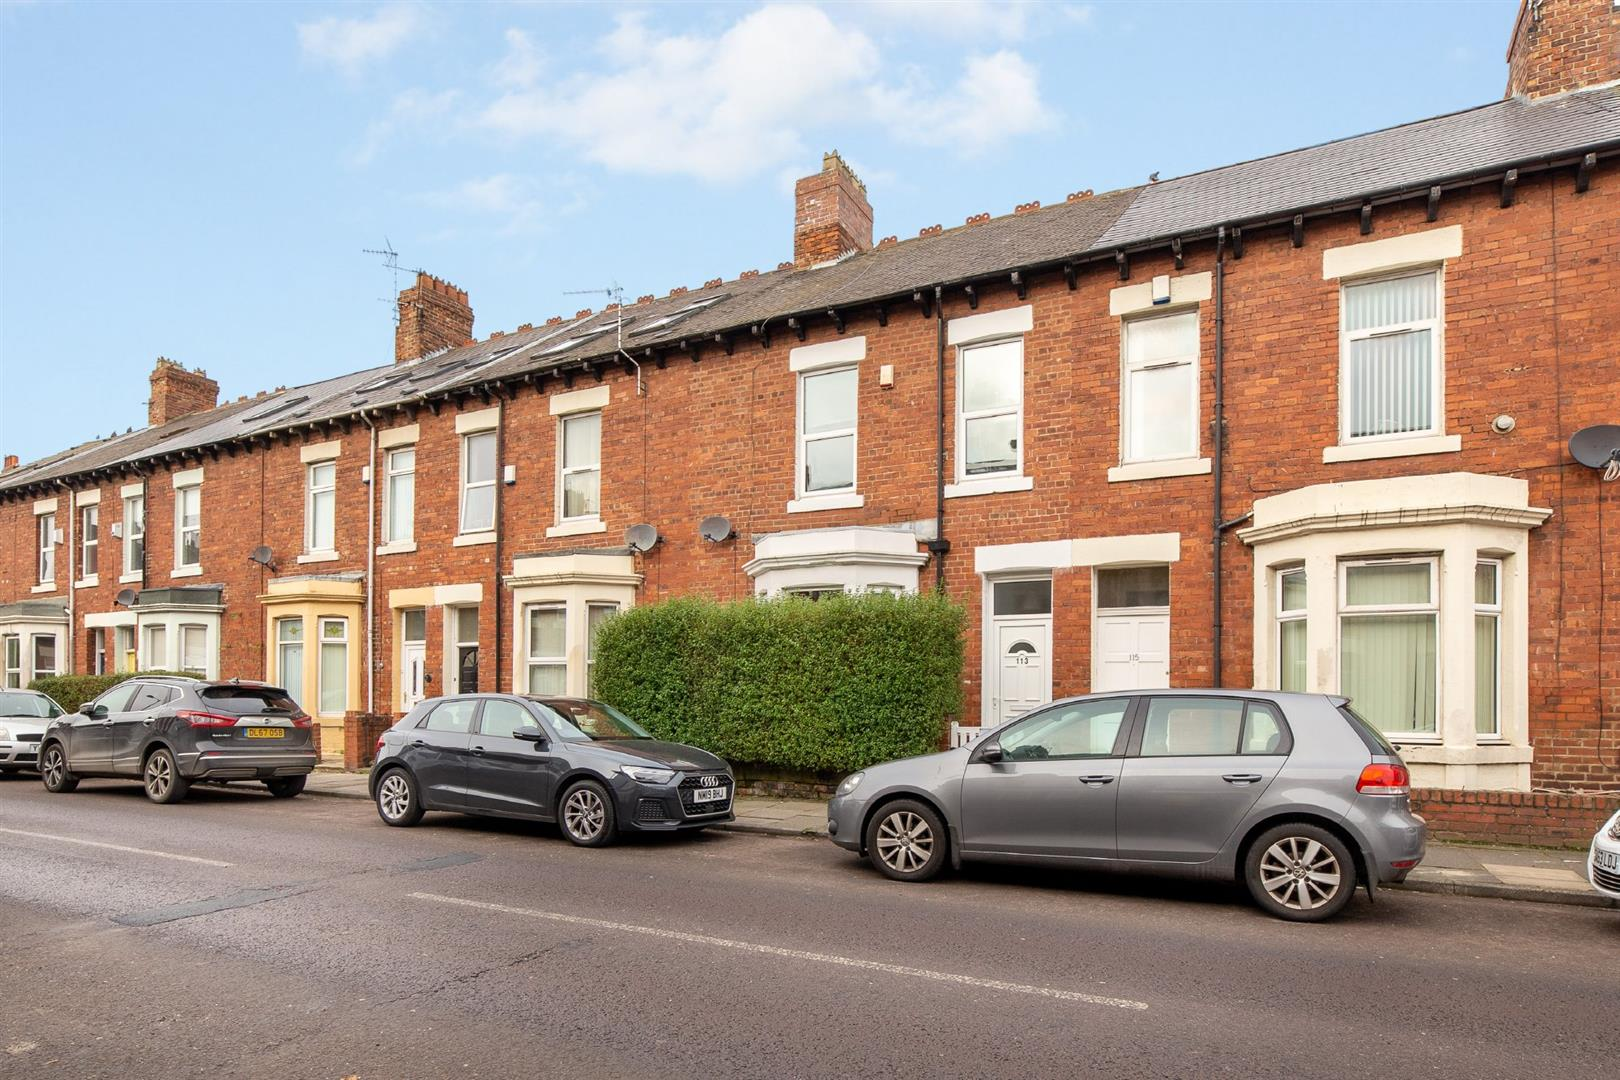 6 bed terraced house for sale in Newcastle Upon Tyne, NE6 5HS 0